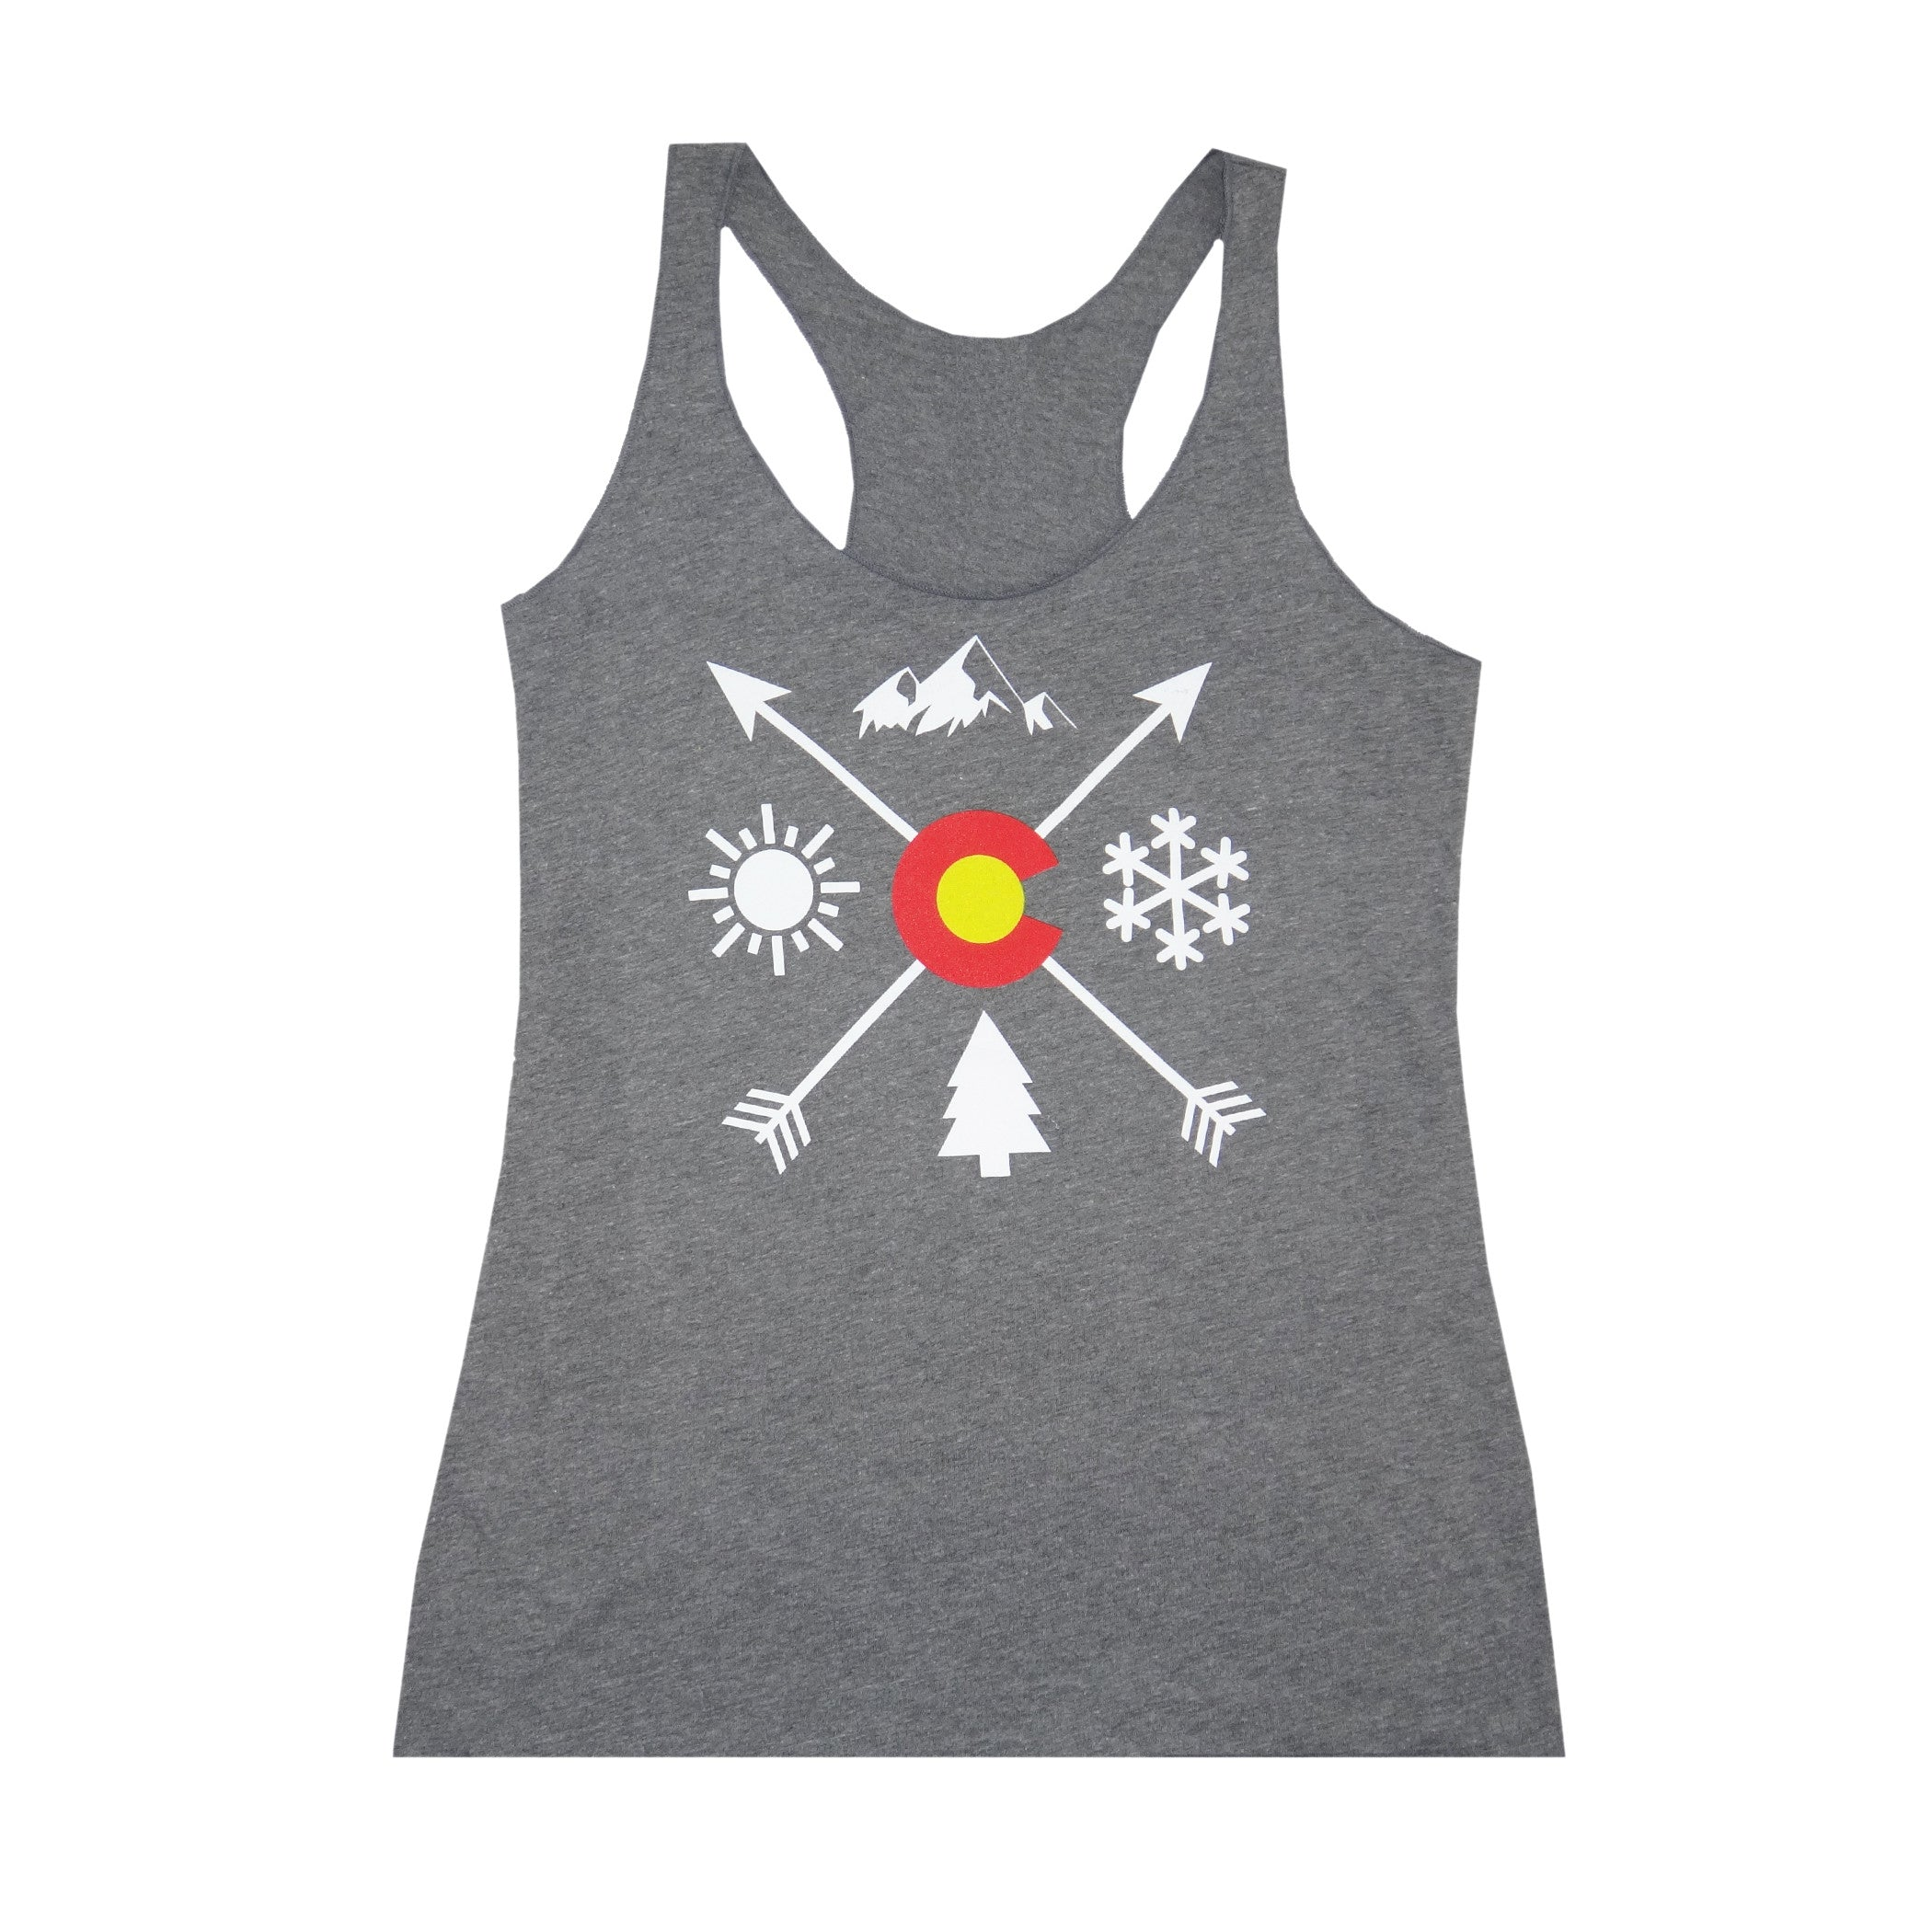 Women's Colorado Arrows Tank Top